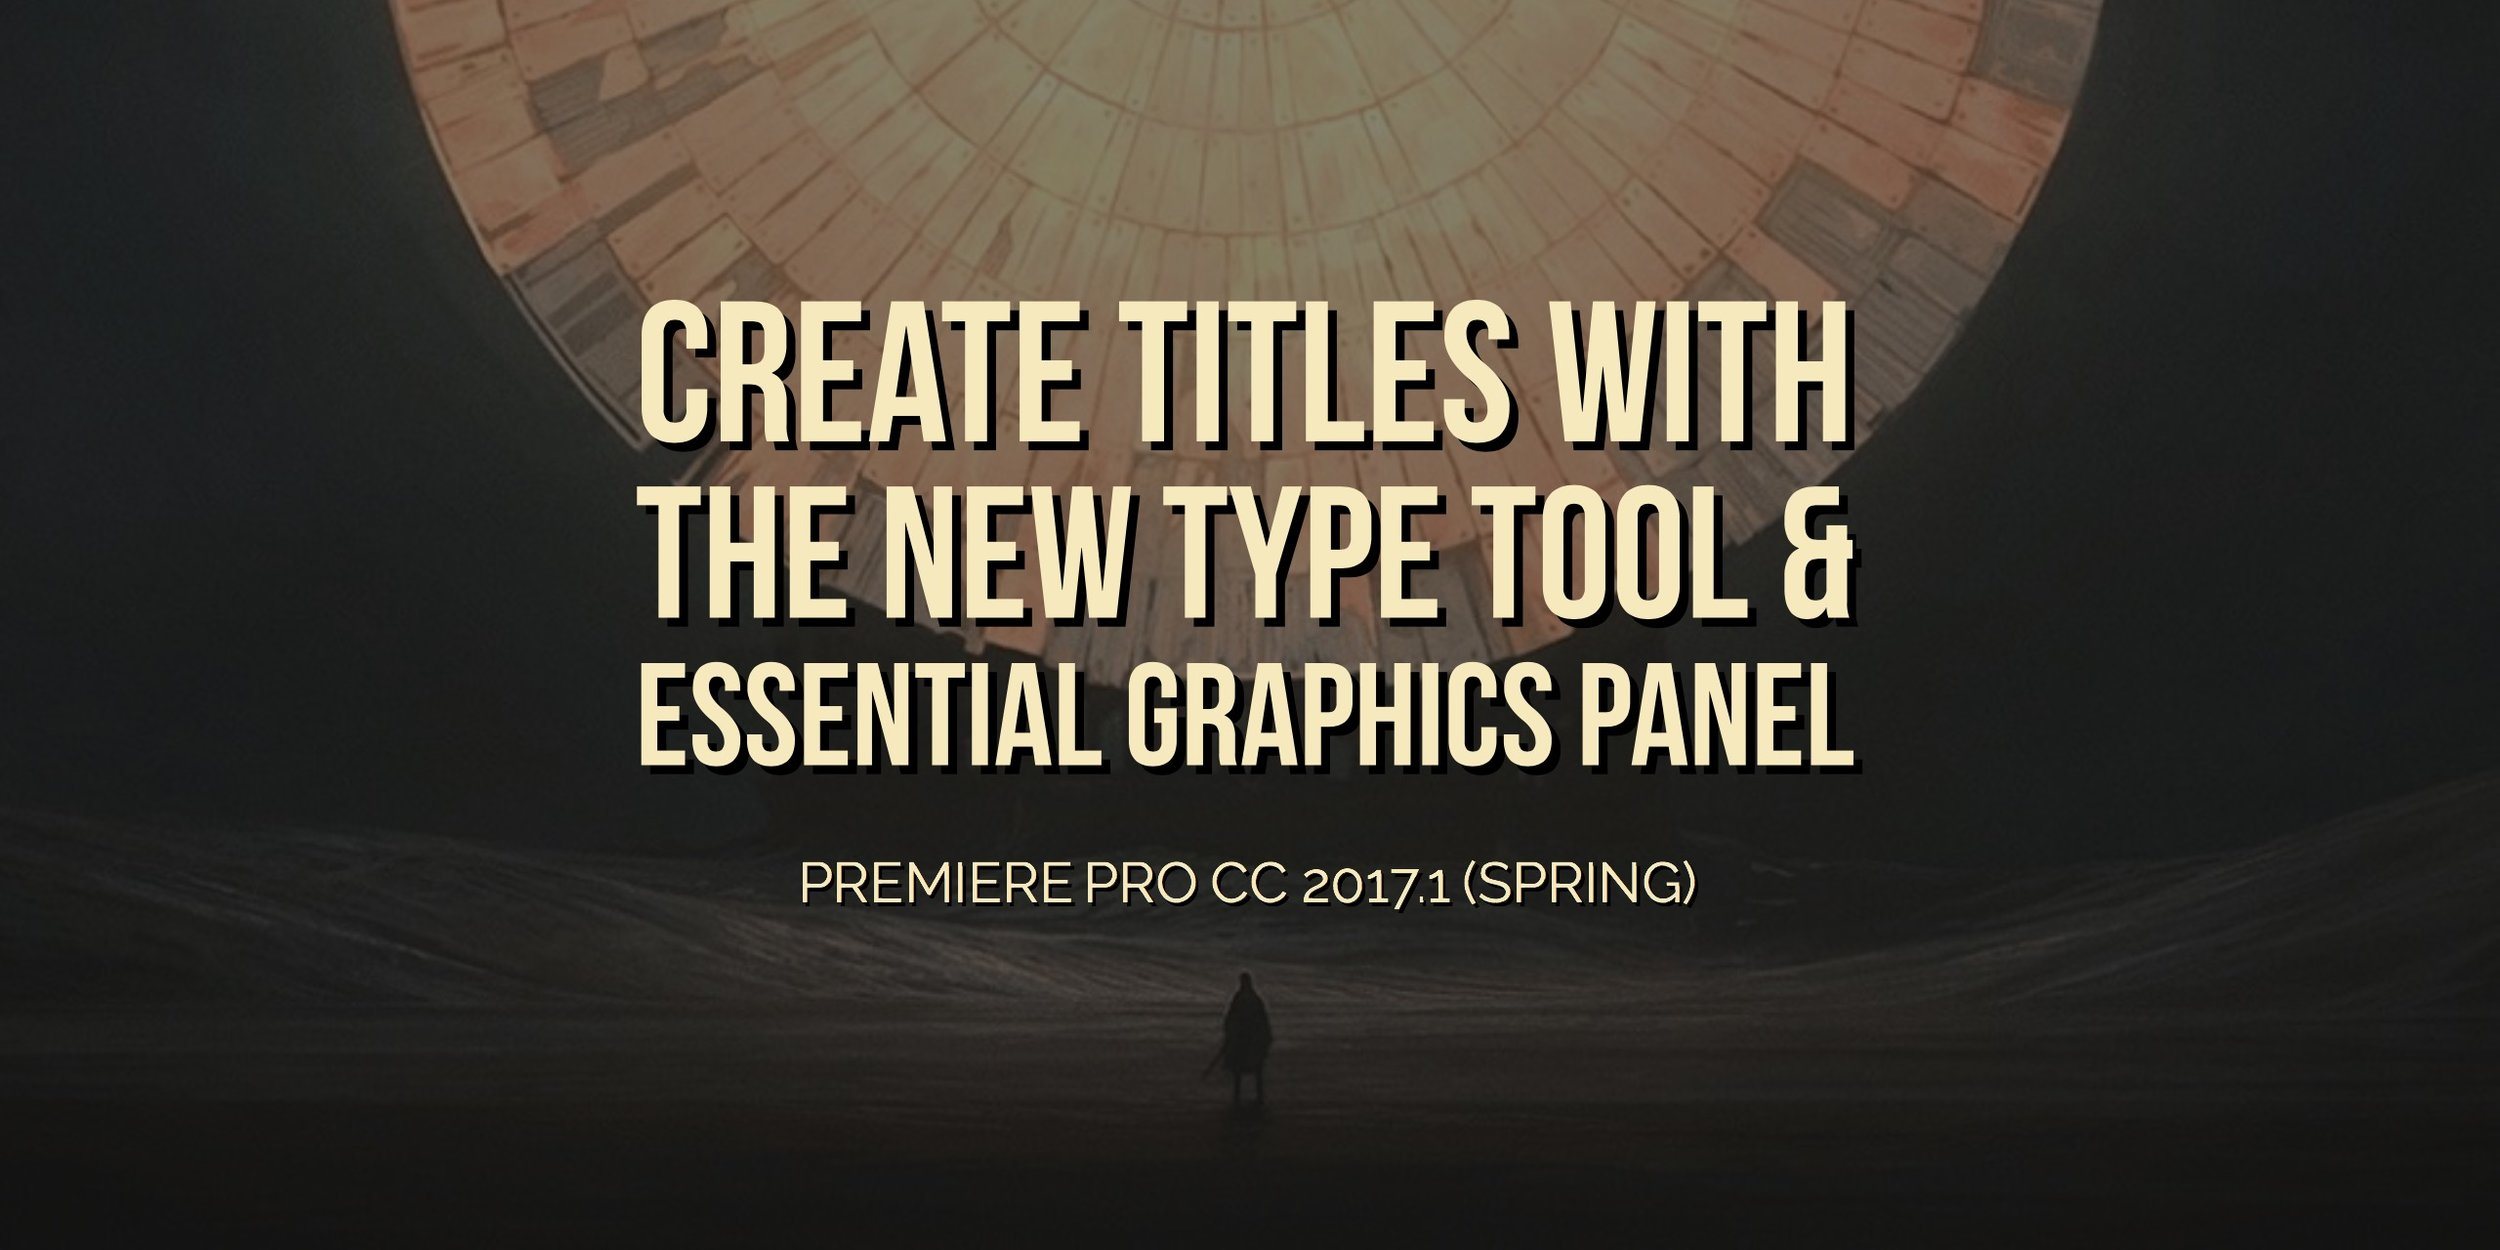 create-titles-type-tool-essential-graphics-panel-premiere-pro